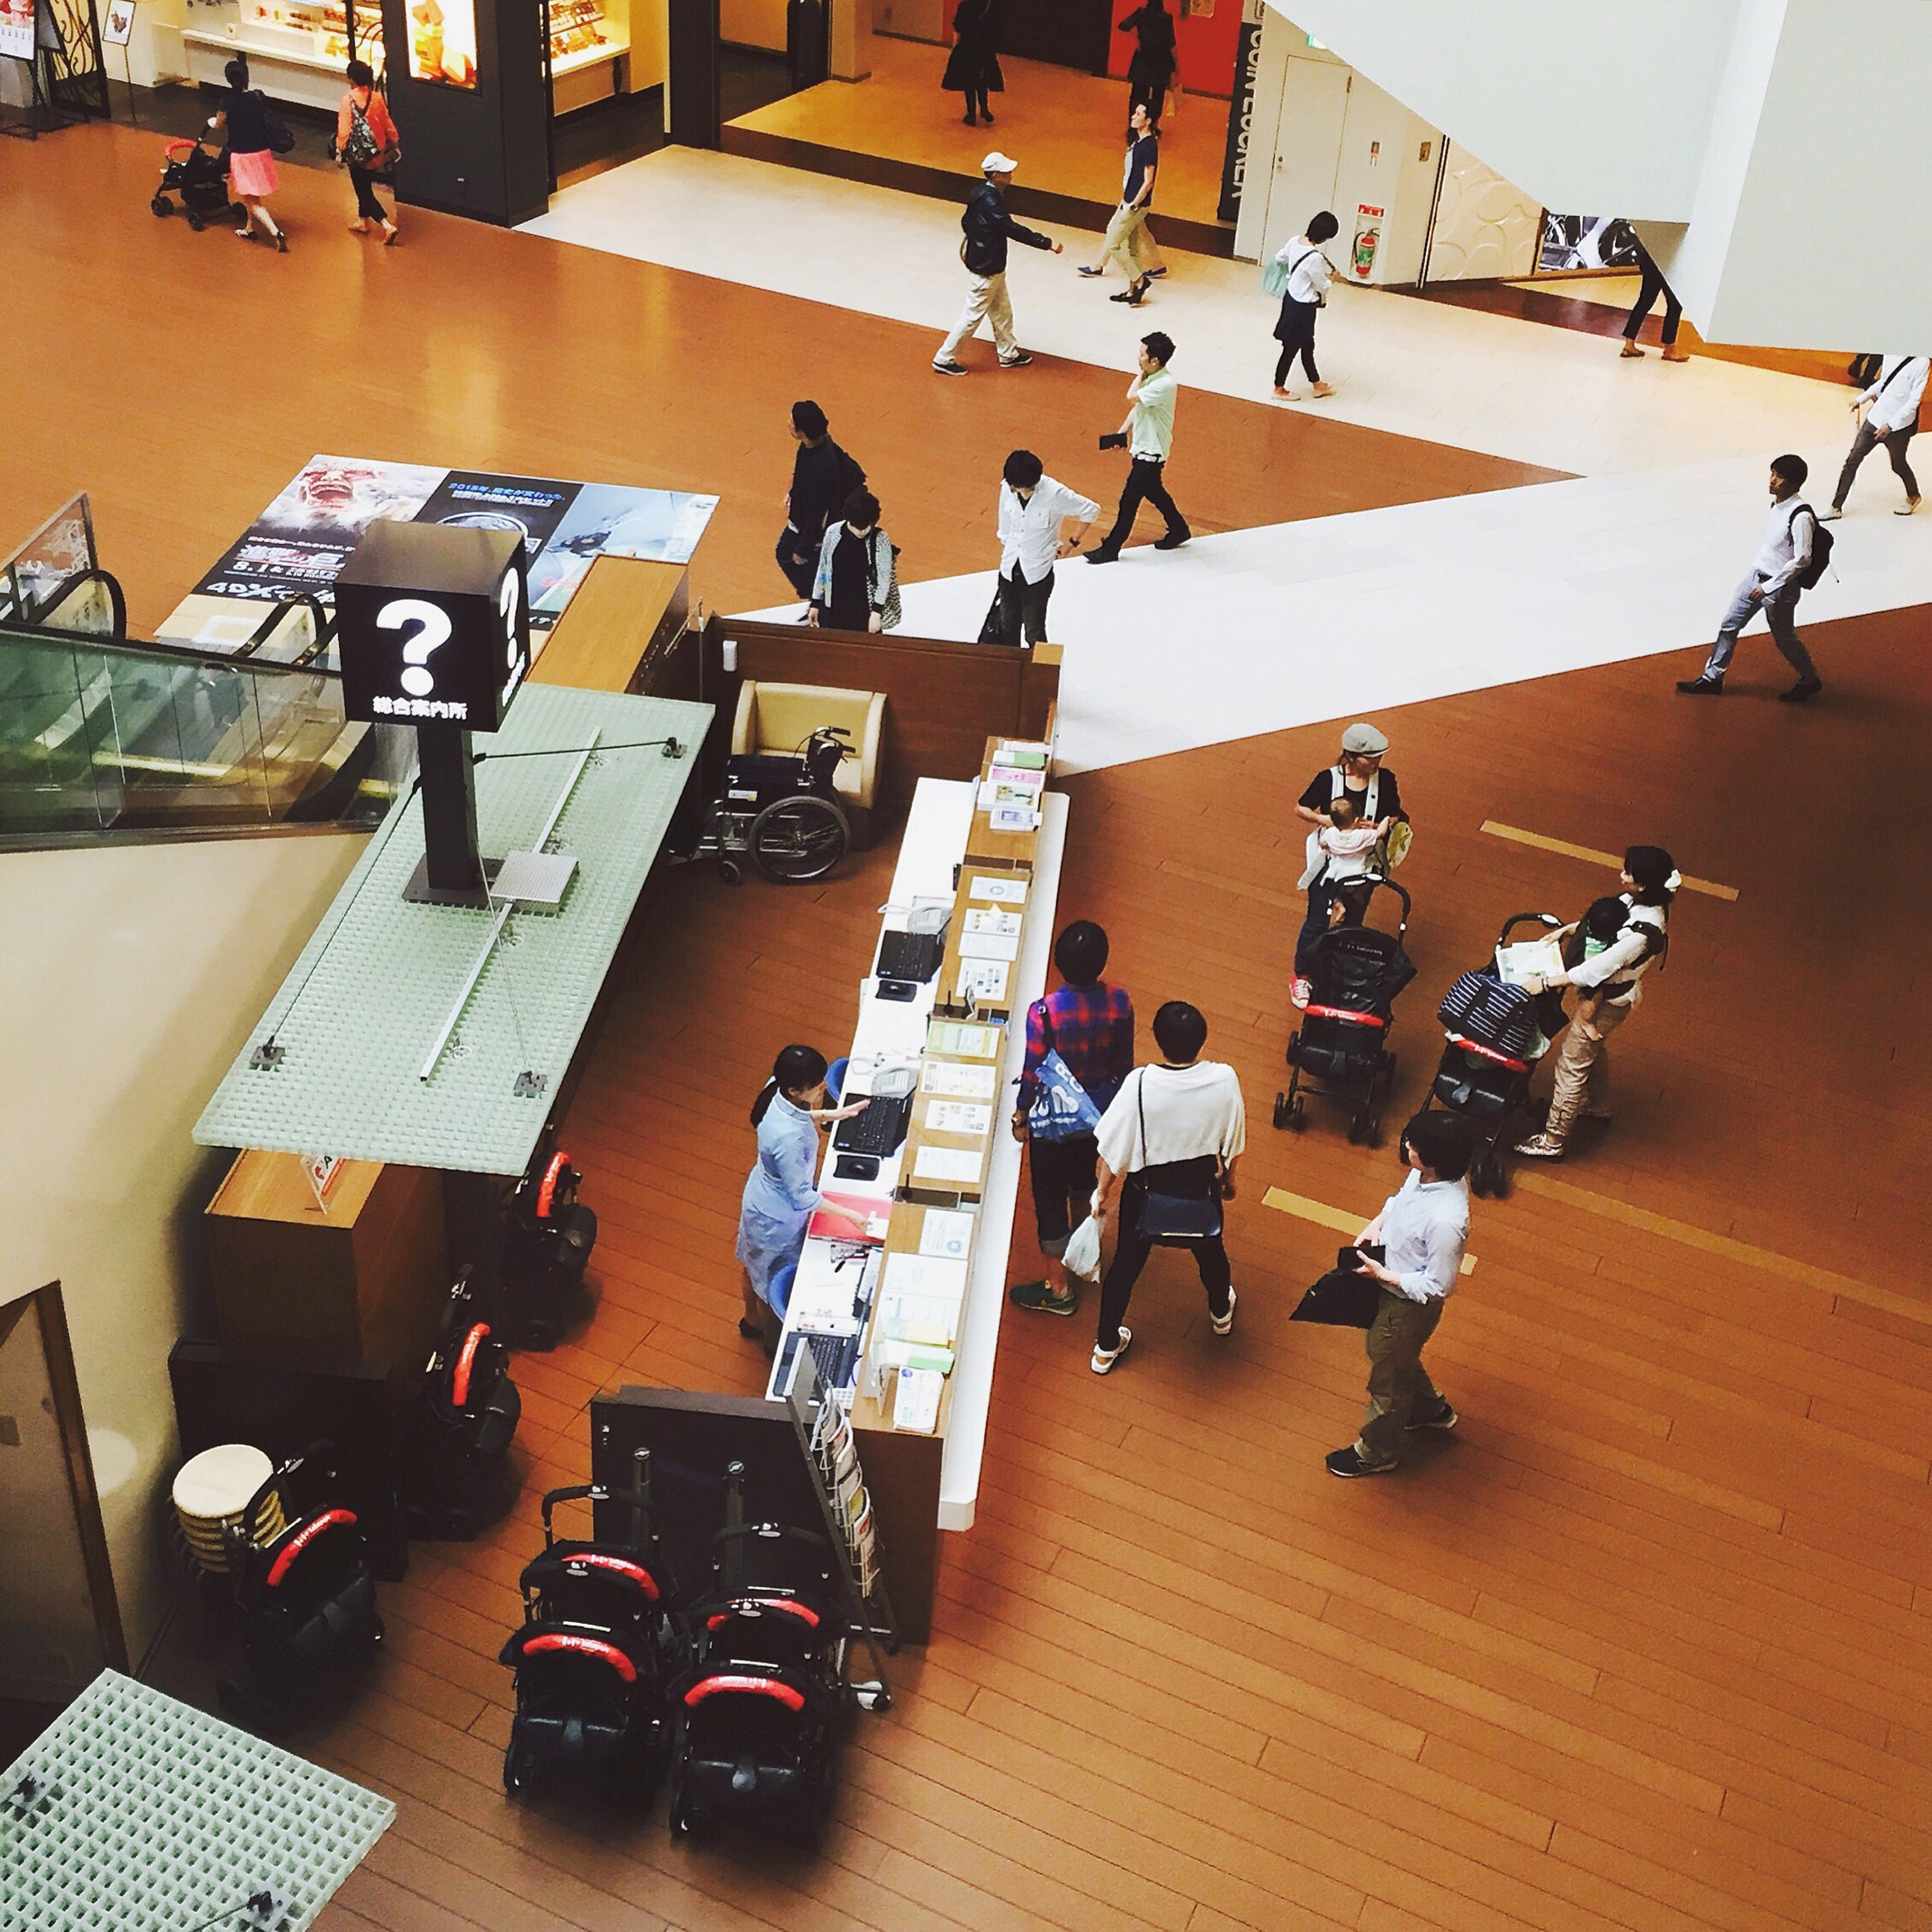 indoors, men, large group of people, lifestyles, person, leisure activity, arts culture and entertainment, high angle view, medium group of people, performance, table, skill, music, togetherness, day, flooring, competition, group of people, shopping